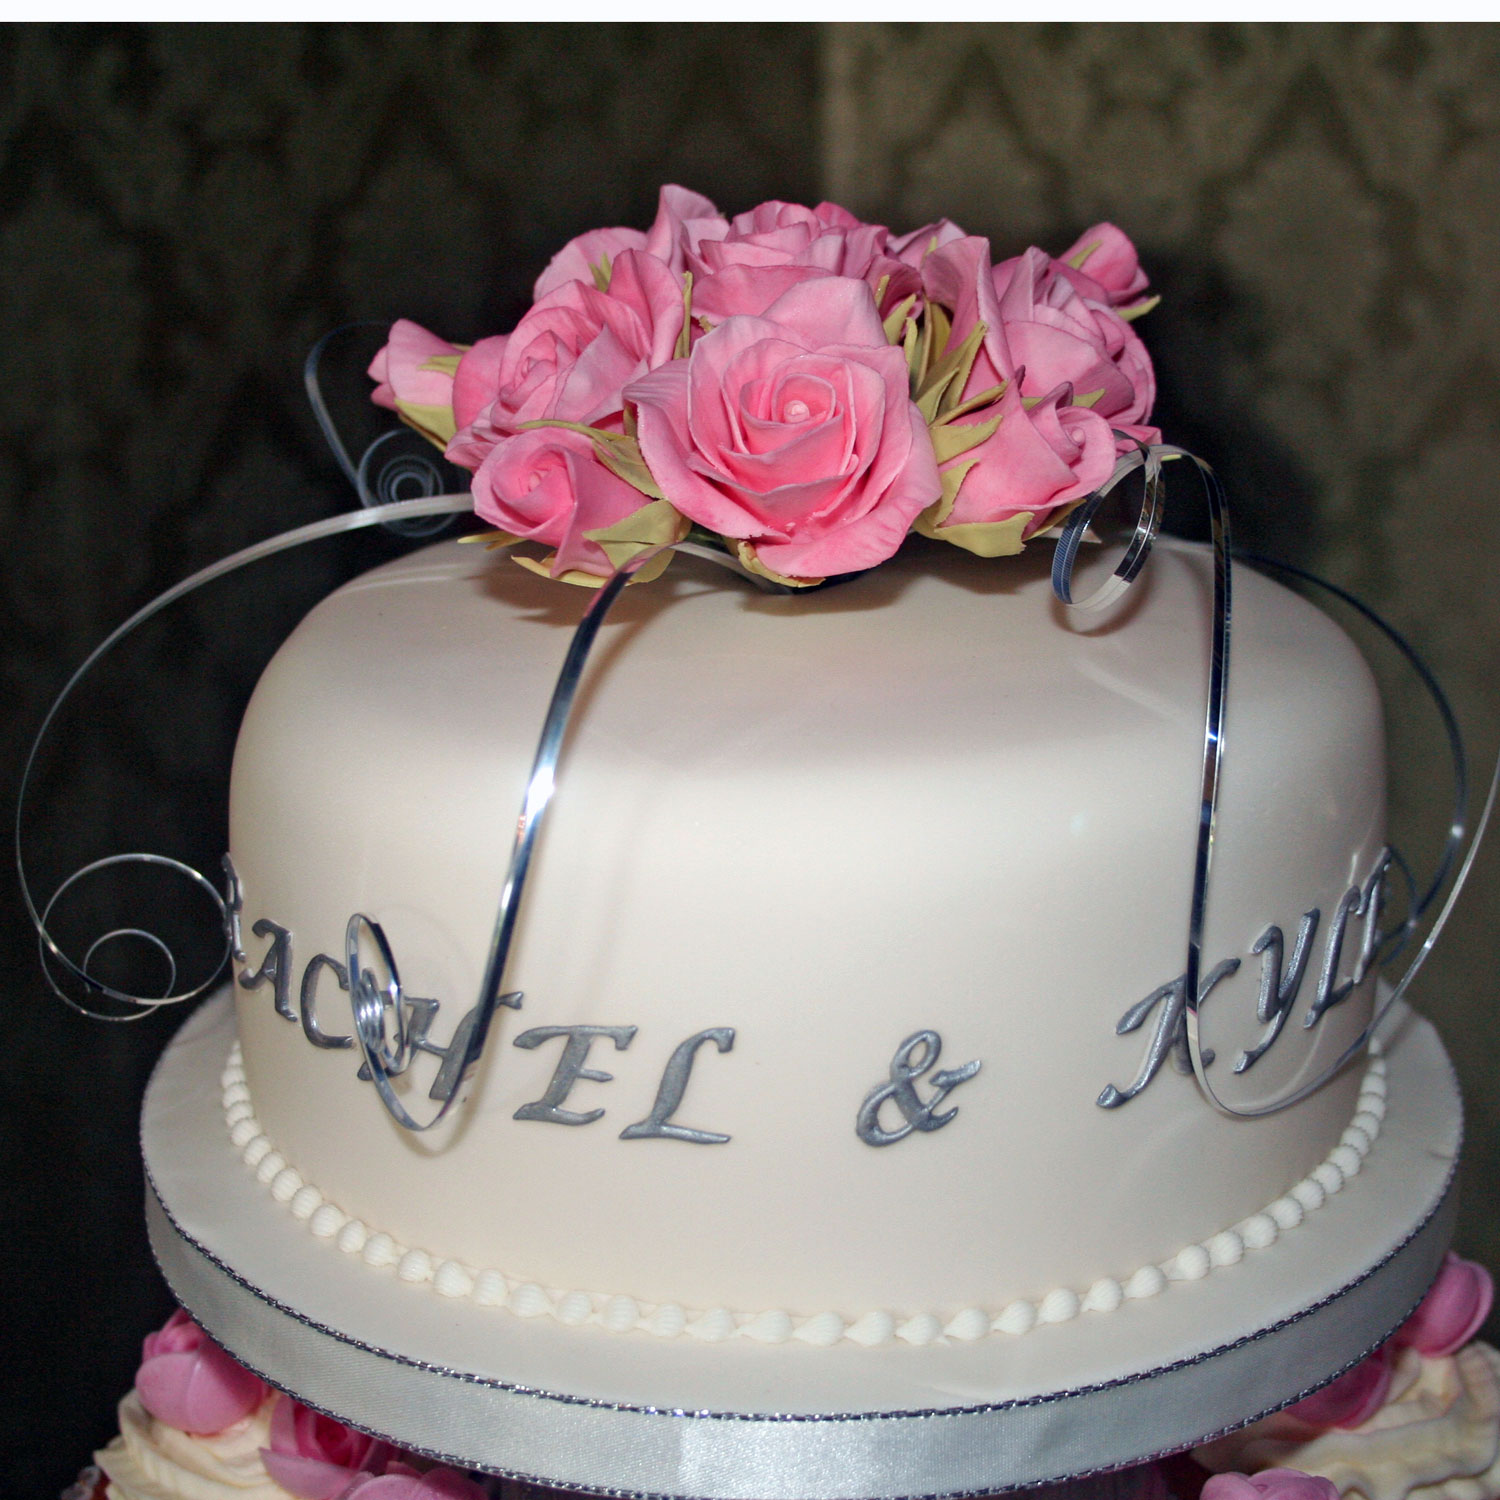 Sugarcraft Roses Cake Topper